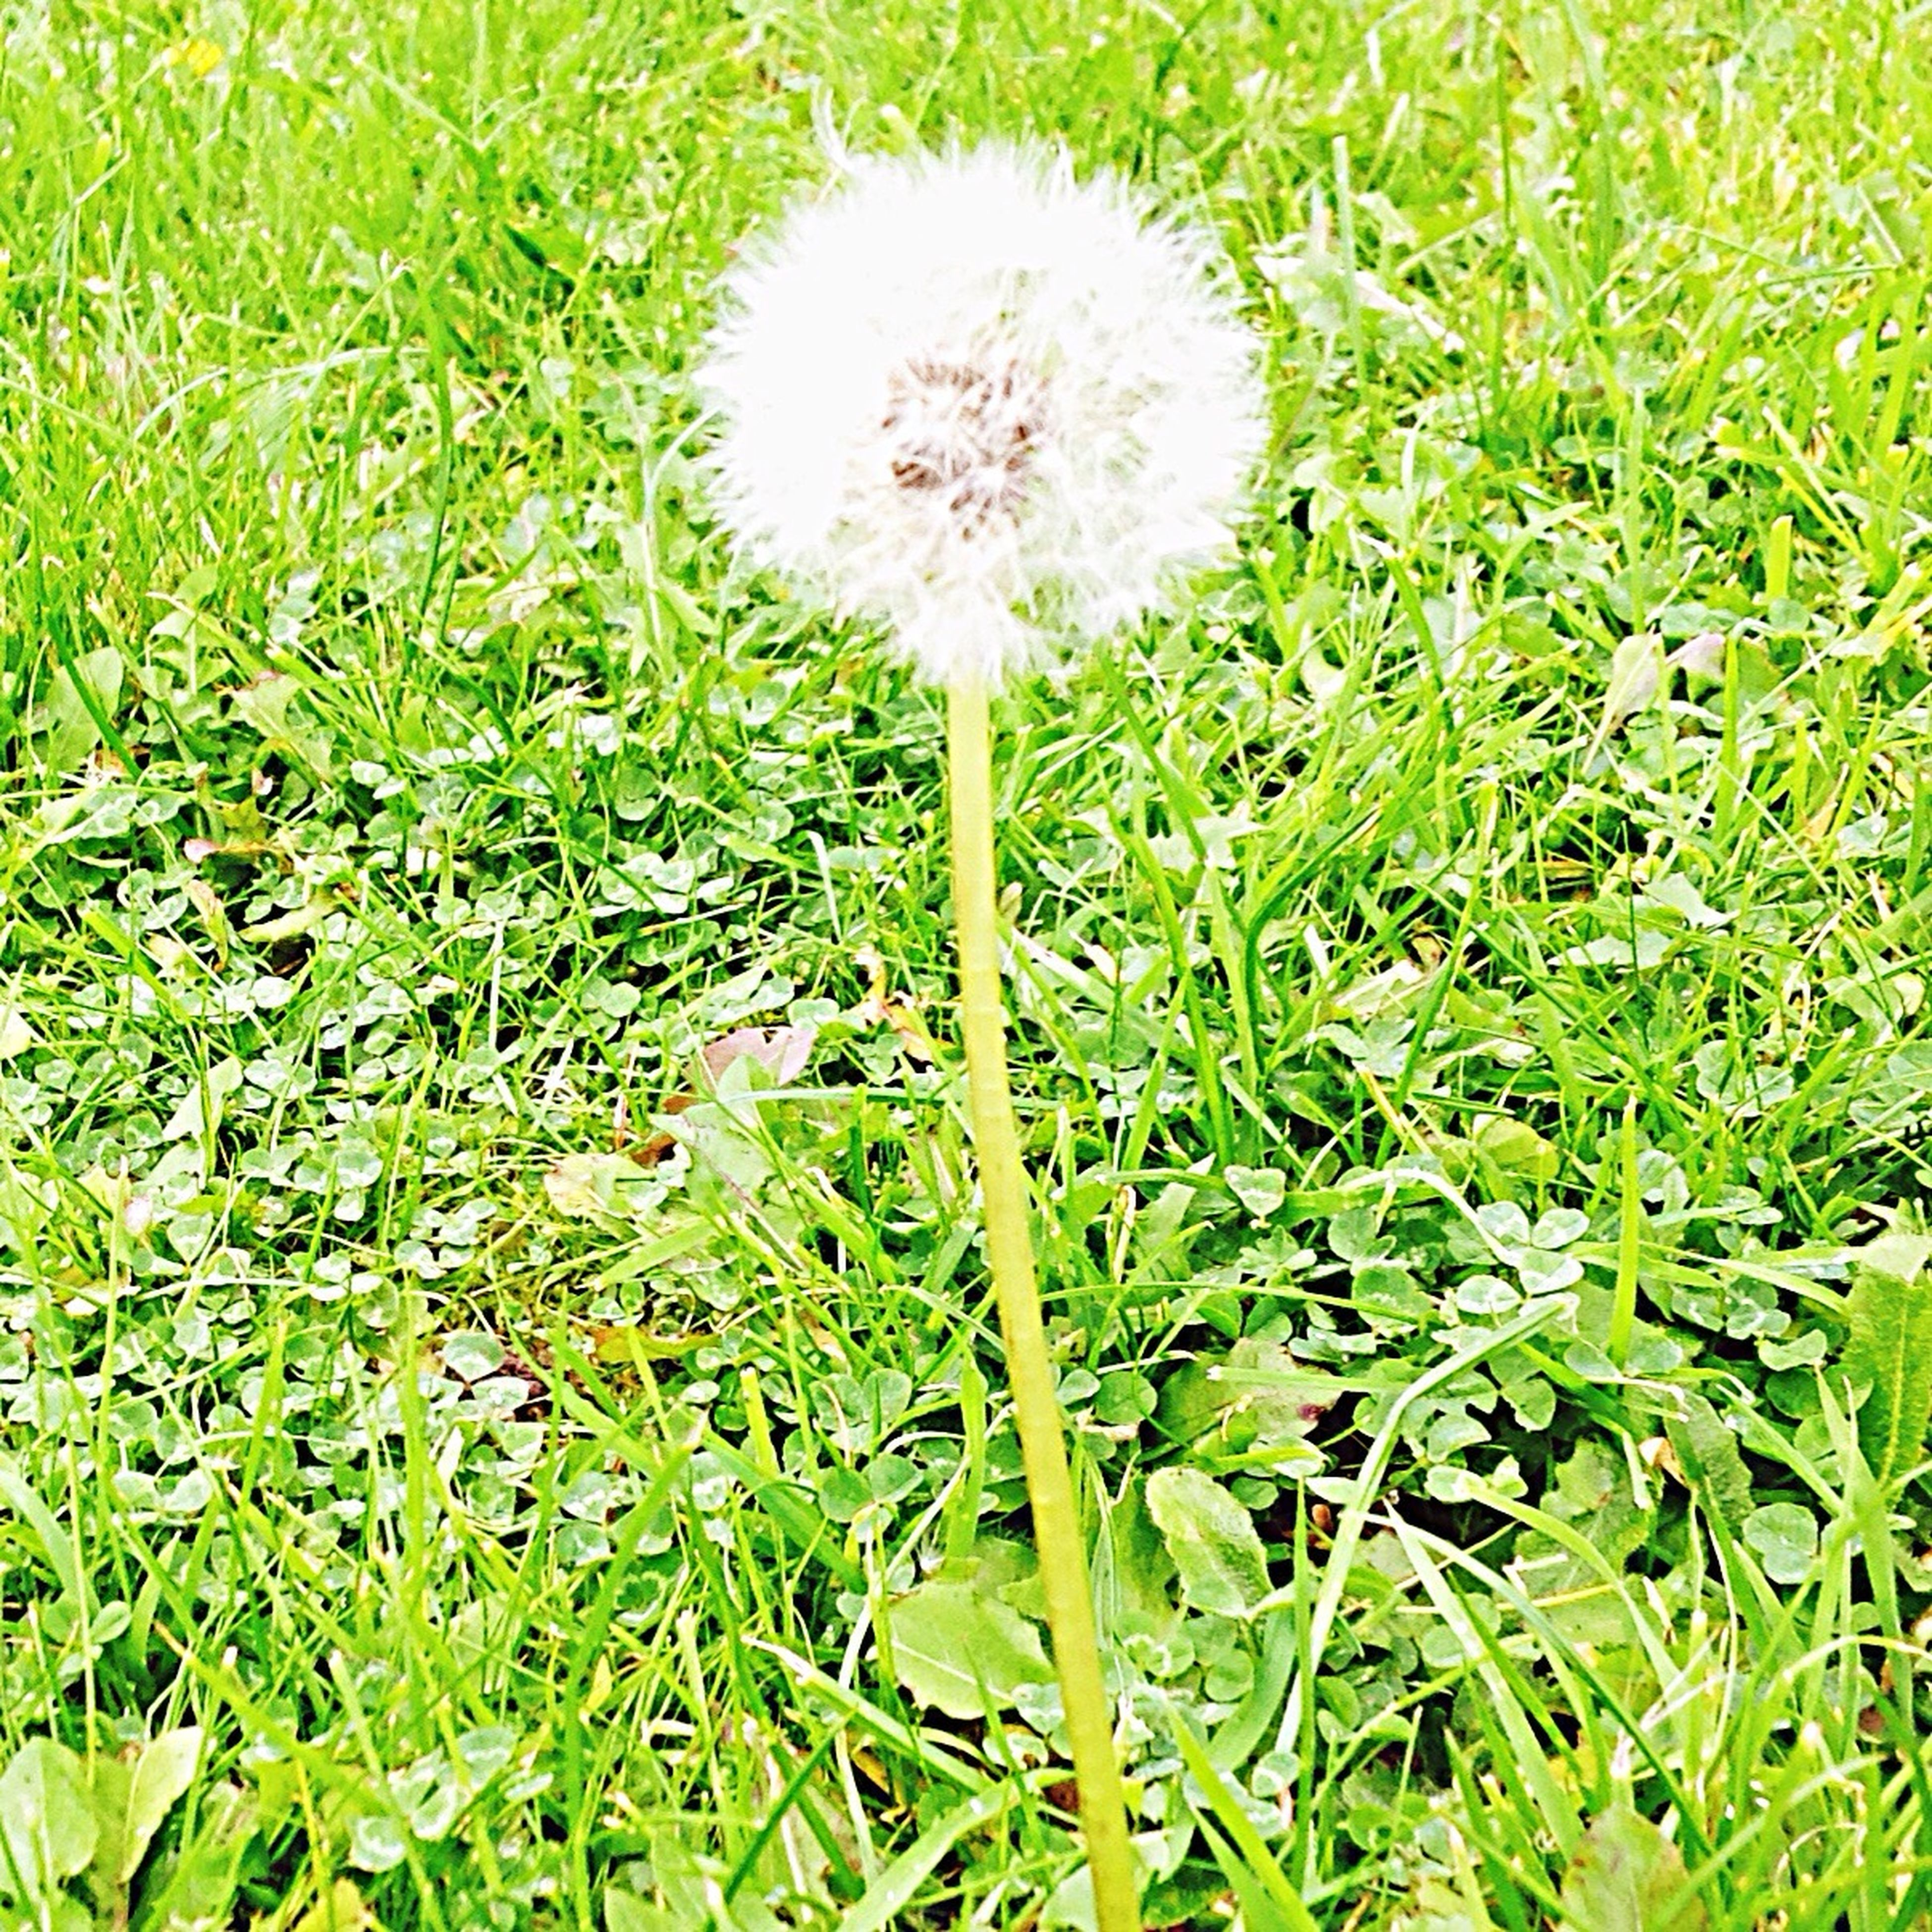 grass, green color, nature, flower, beauty in nature, growth, white color, dandelion, no people, fragility, field, freshness, flower head, outdoors, plant, scenics, day, wildflower, seed, close-up, dandelion seed